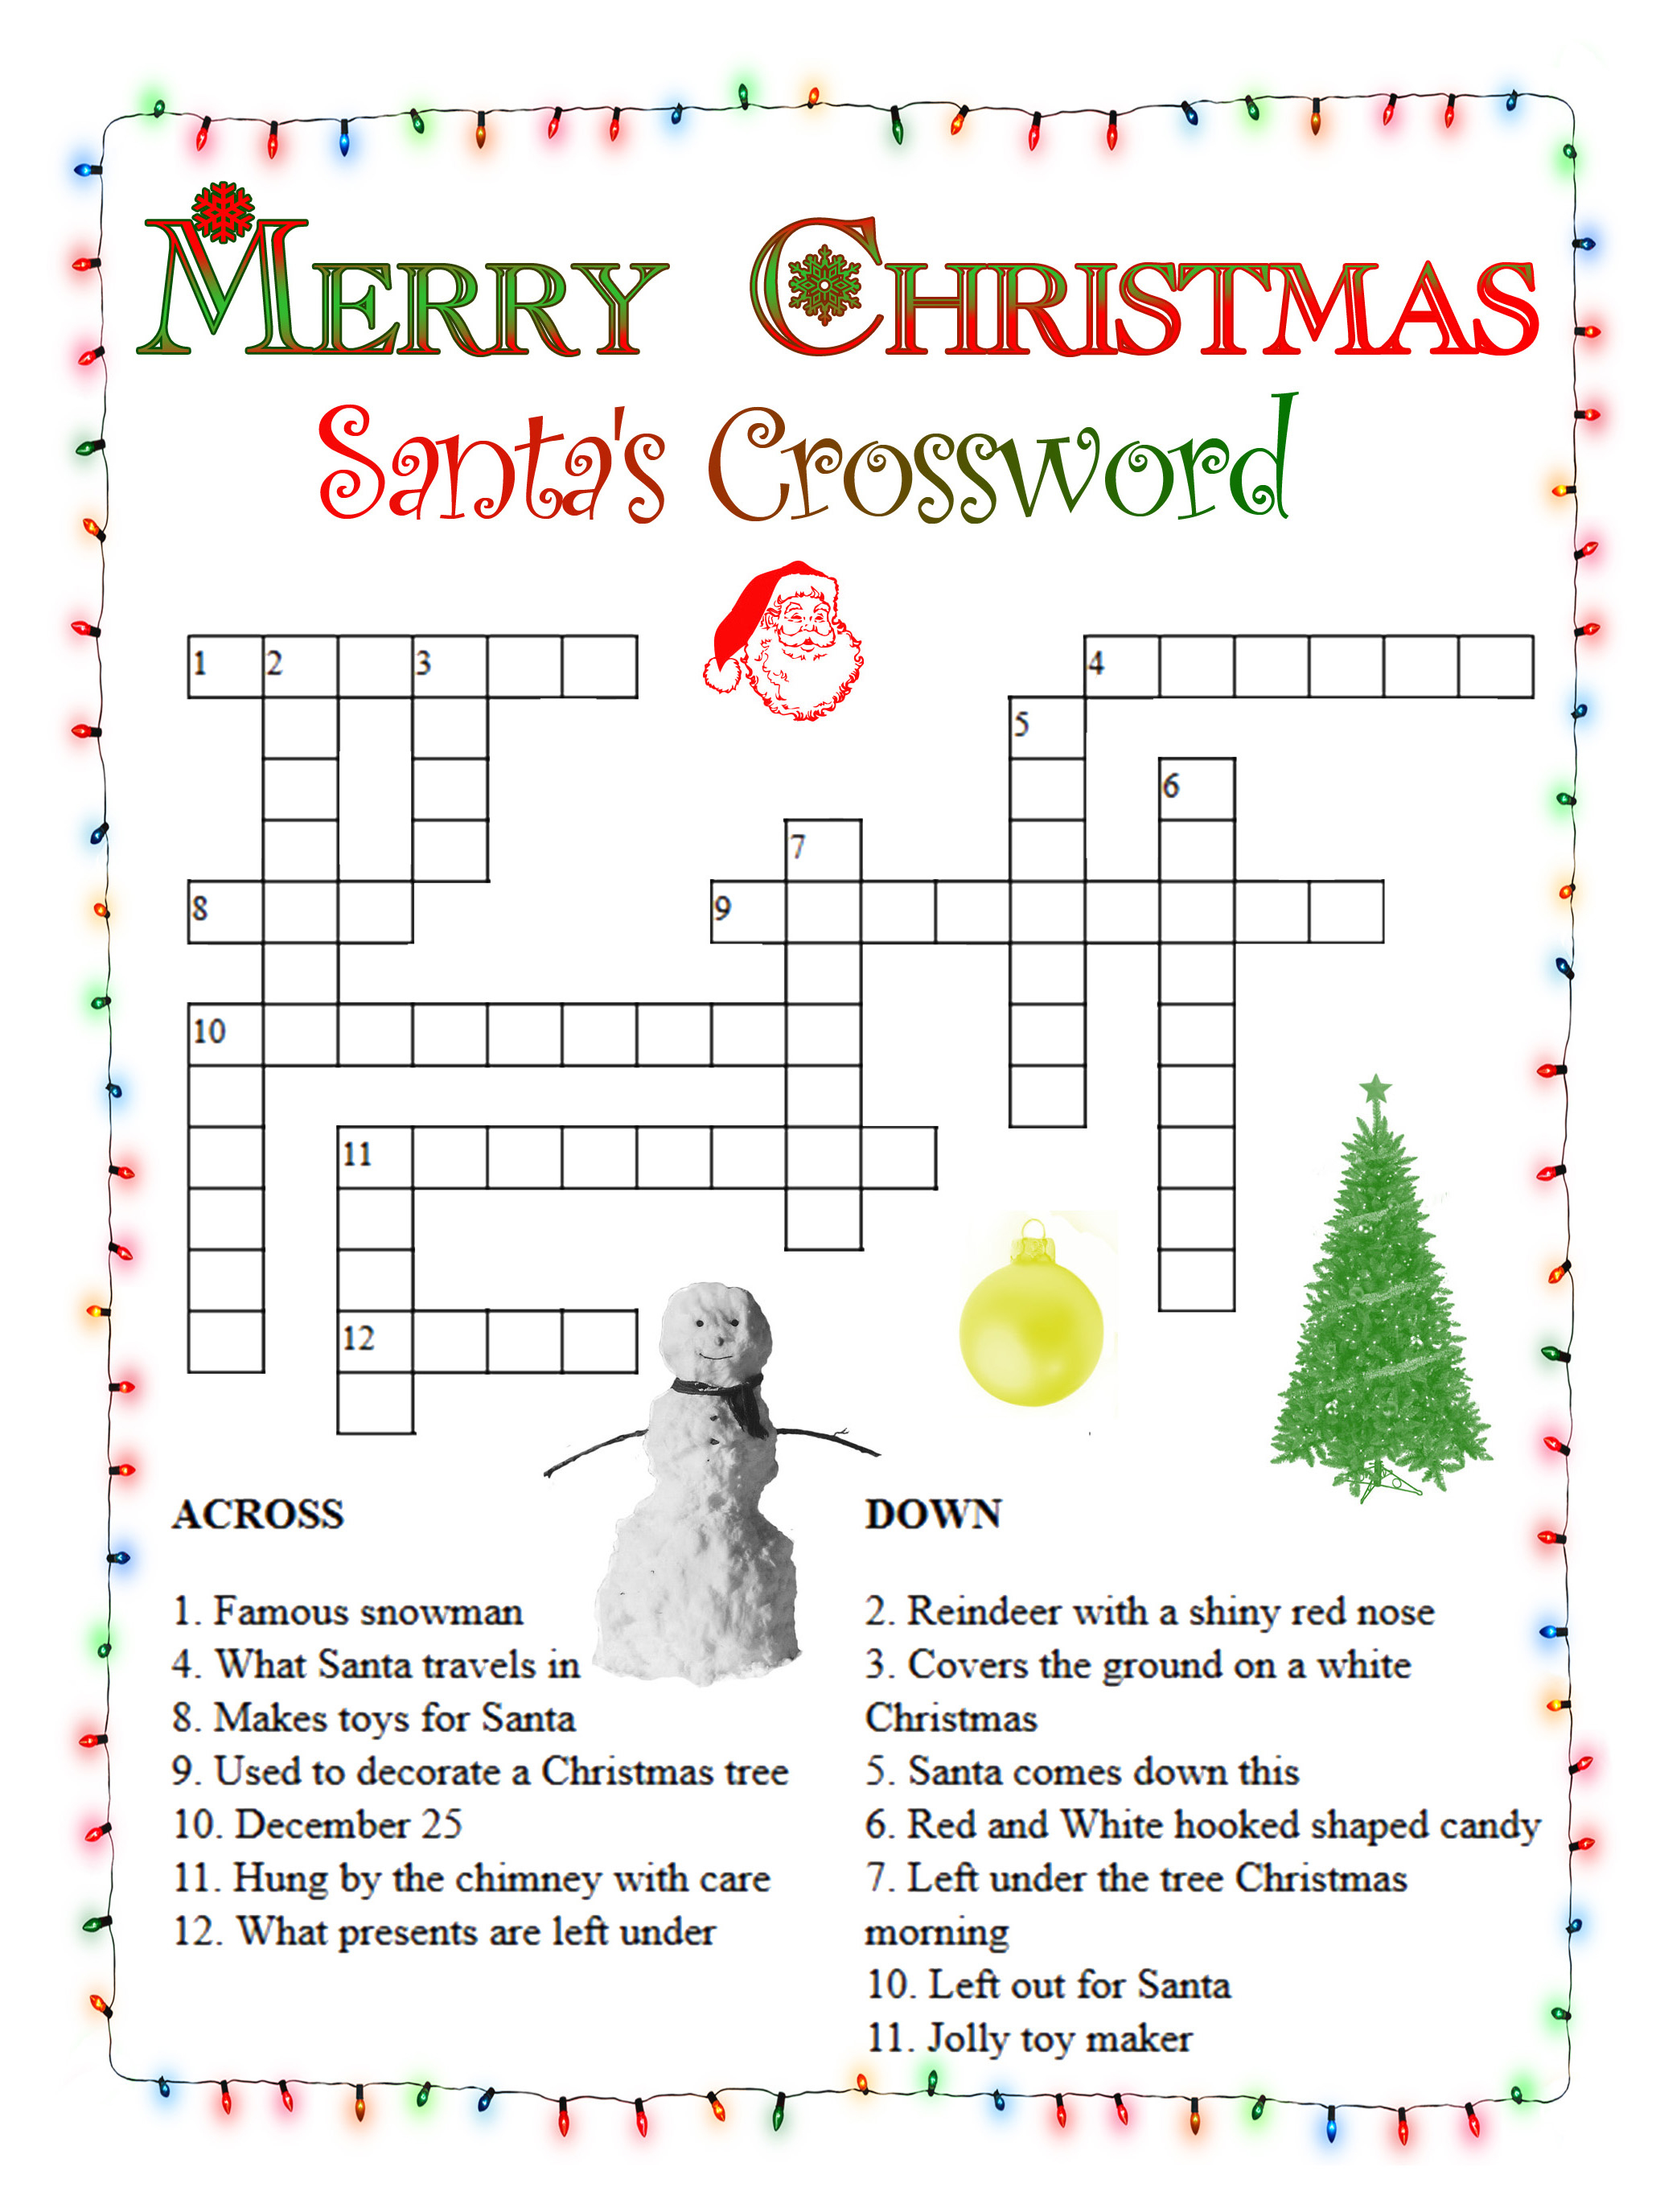 Christmas Crossword Puzzles - Best Coloring Pages For Kids - Printable Crossword Christmas